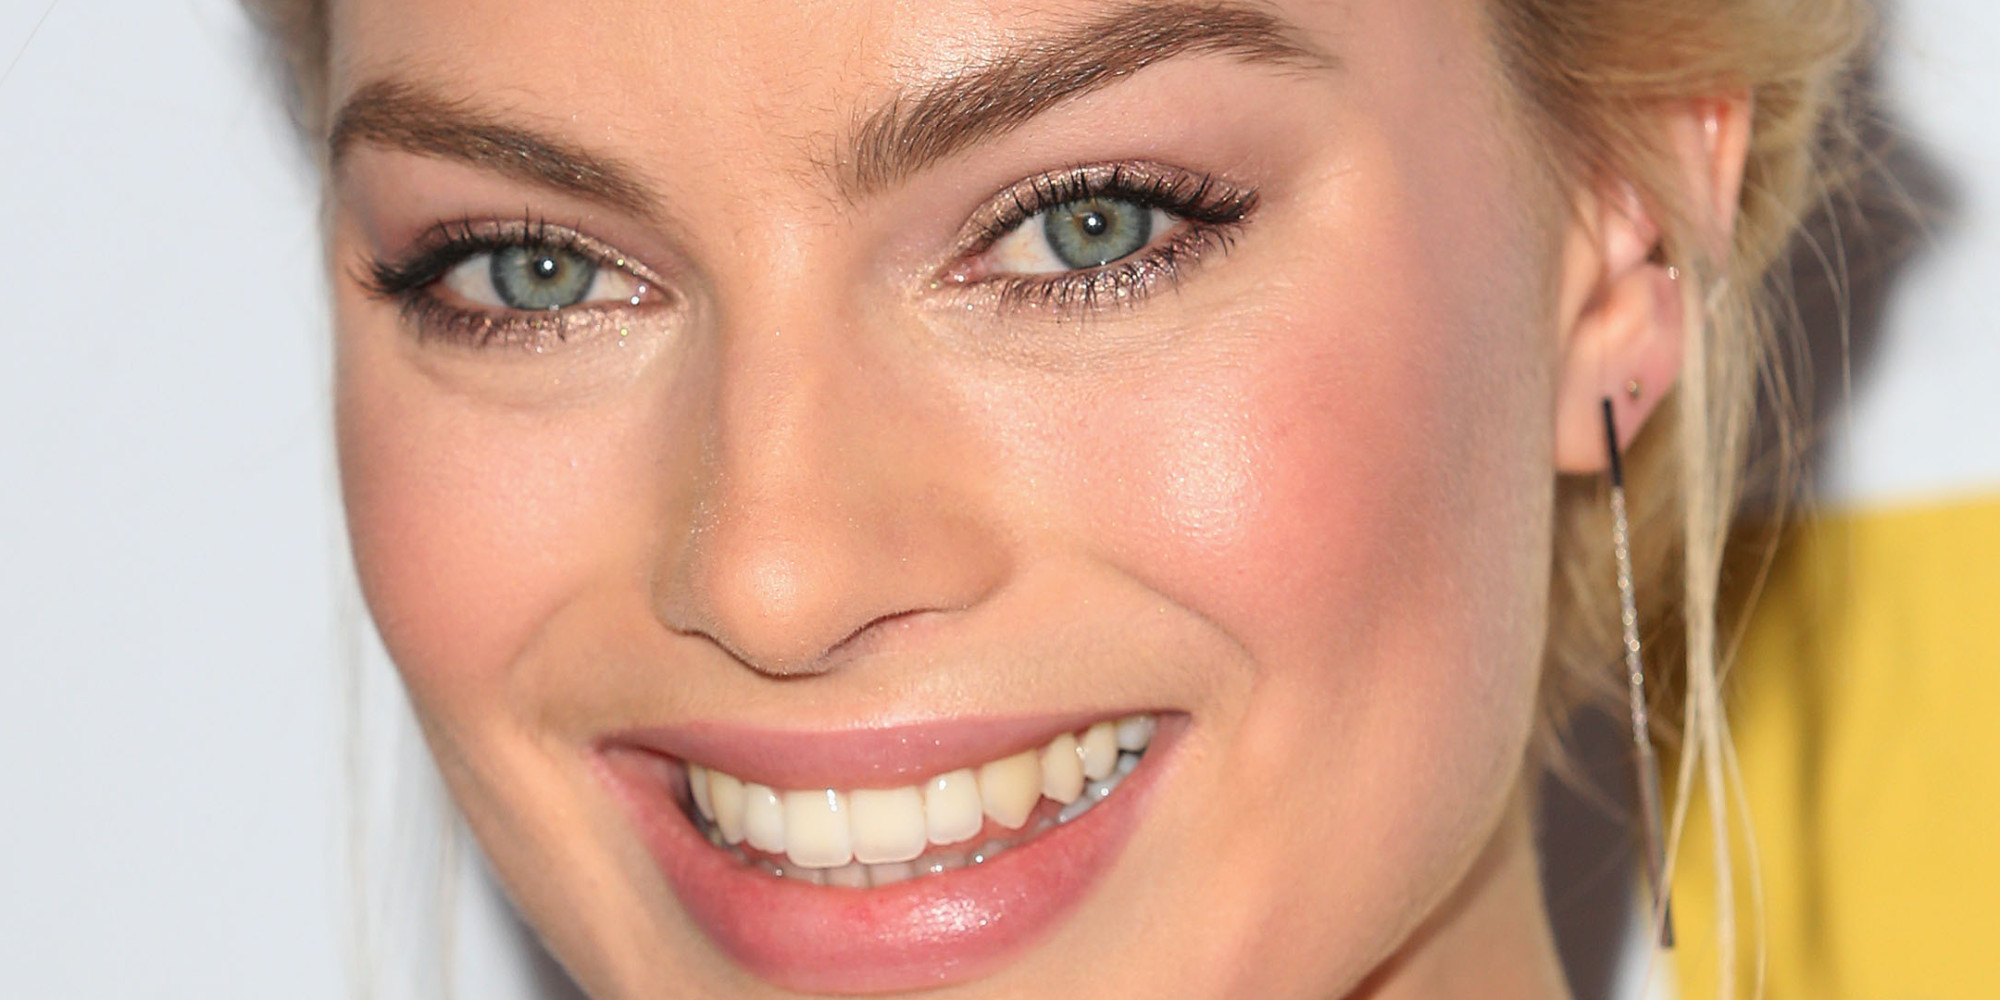 SANTA MONICA, CA - OCTOBER 26: Actress Margot Robbie attends the 3rd Annual Australians in Film Awards Benefit Gala at the Fairmont Miramar Hotel on October 26, 2014 in Santa Monica, California. (Photo by Frederick M. Brown/Getty Images)